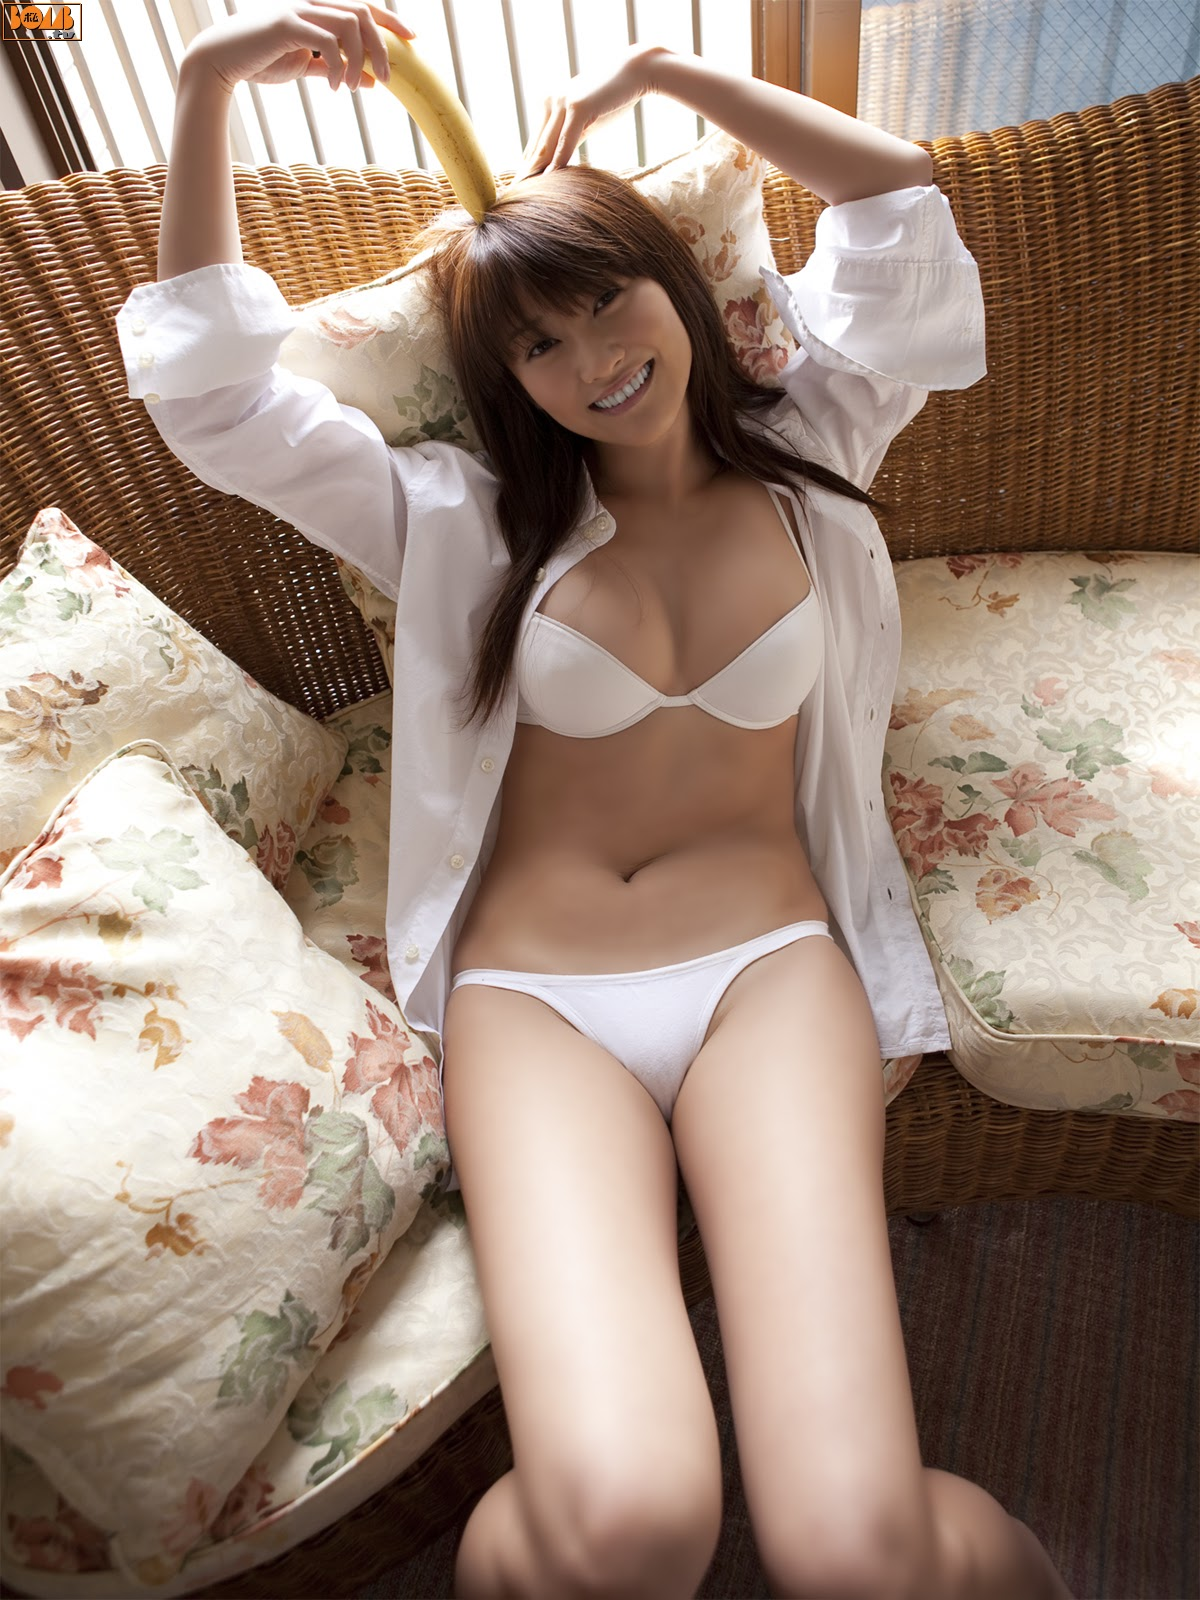 All kinds of redweathered skin sweaty skin smiles in the morning light Mikie Hara012